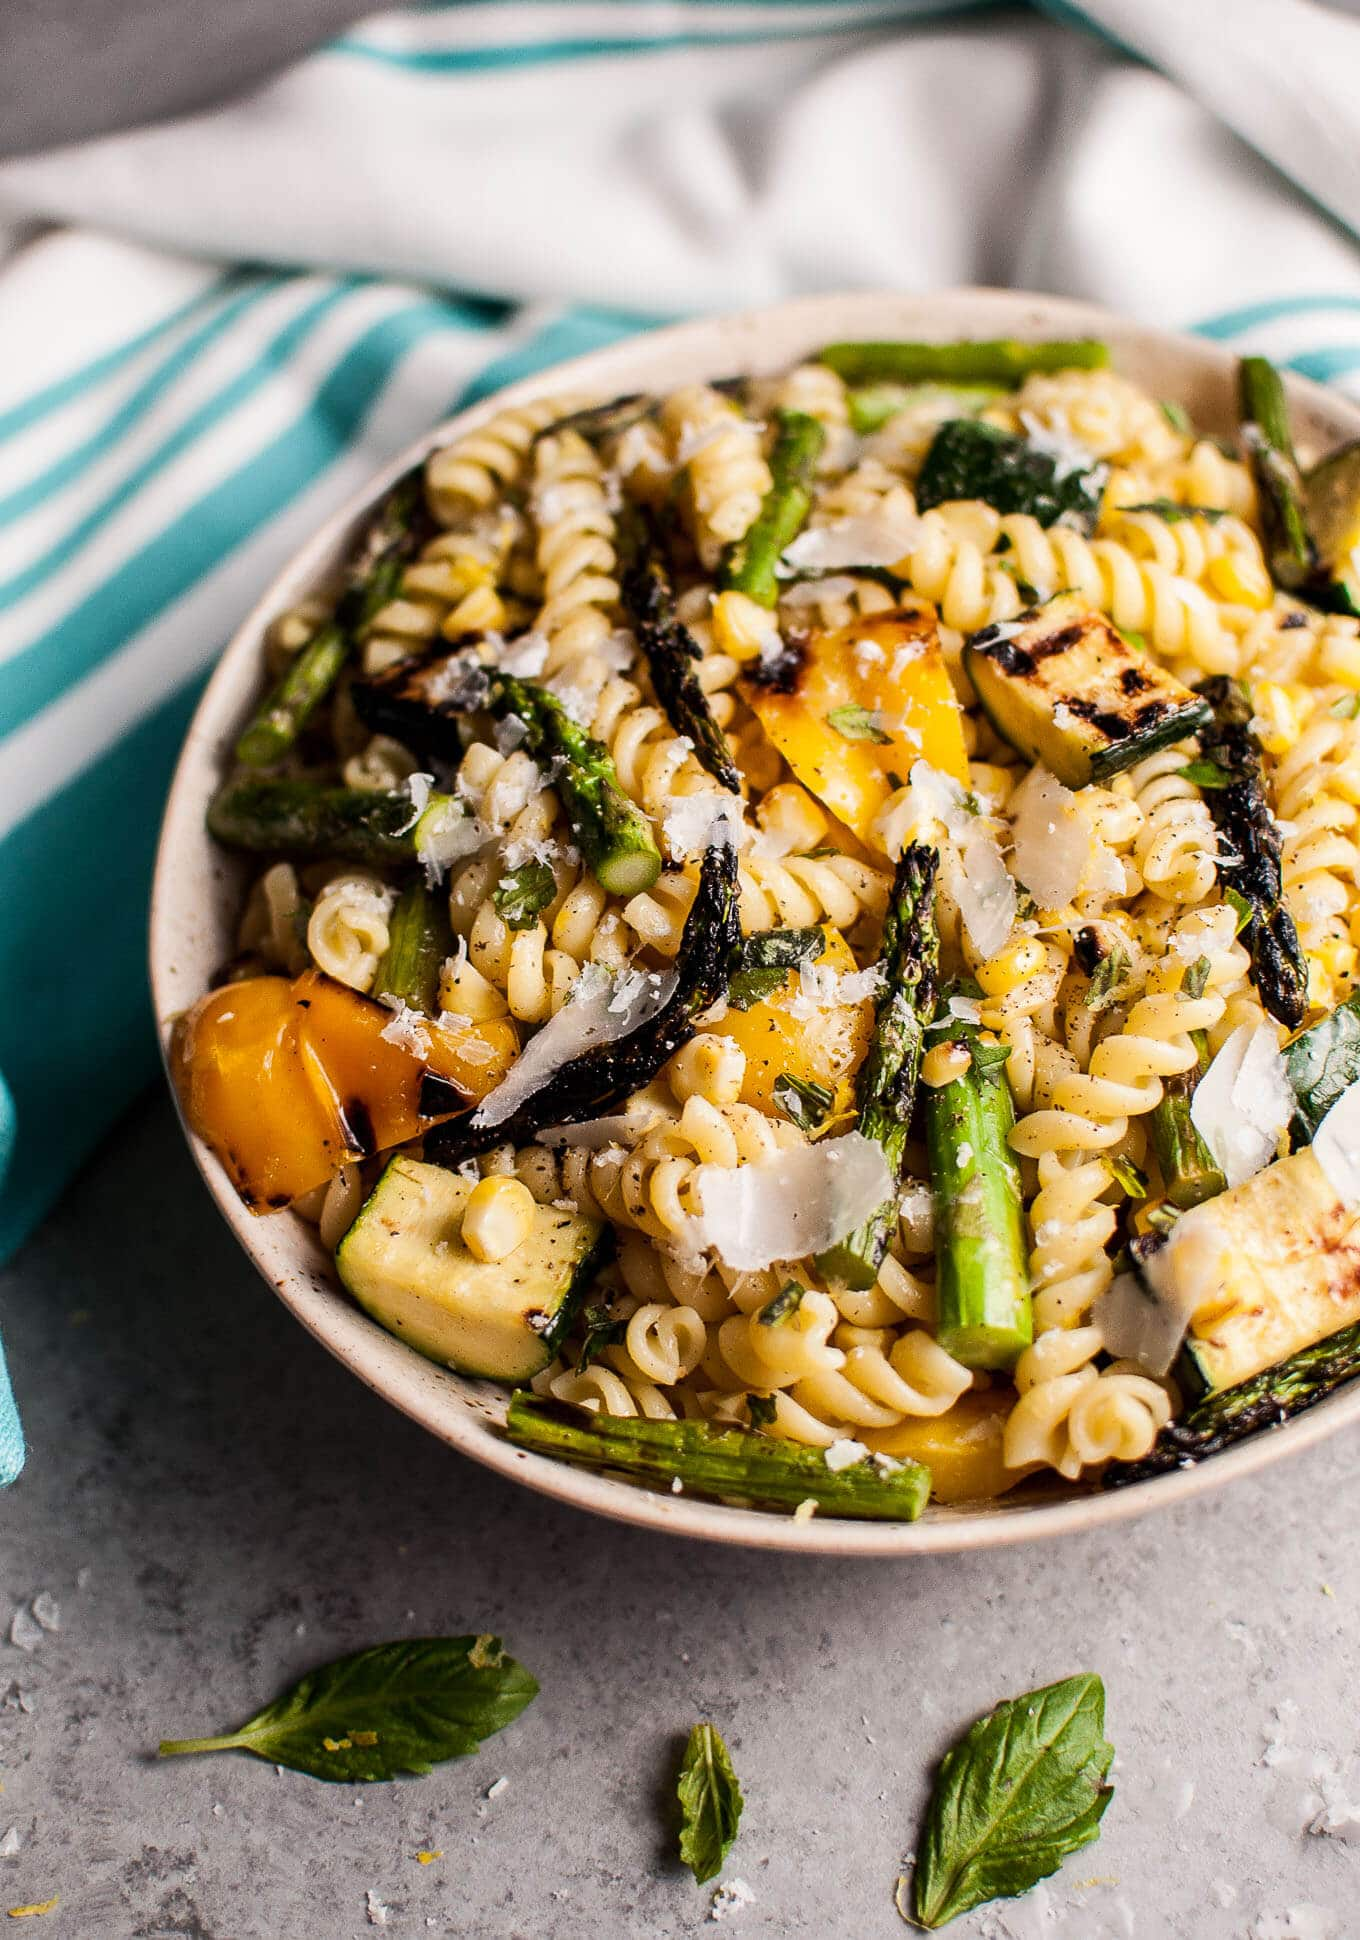 30 Days of Healthy Grilling Recipes - Grilled Summer Vegetable Pasta Salad via Salt and Lavender | https://www.roseclearfield.com